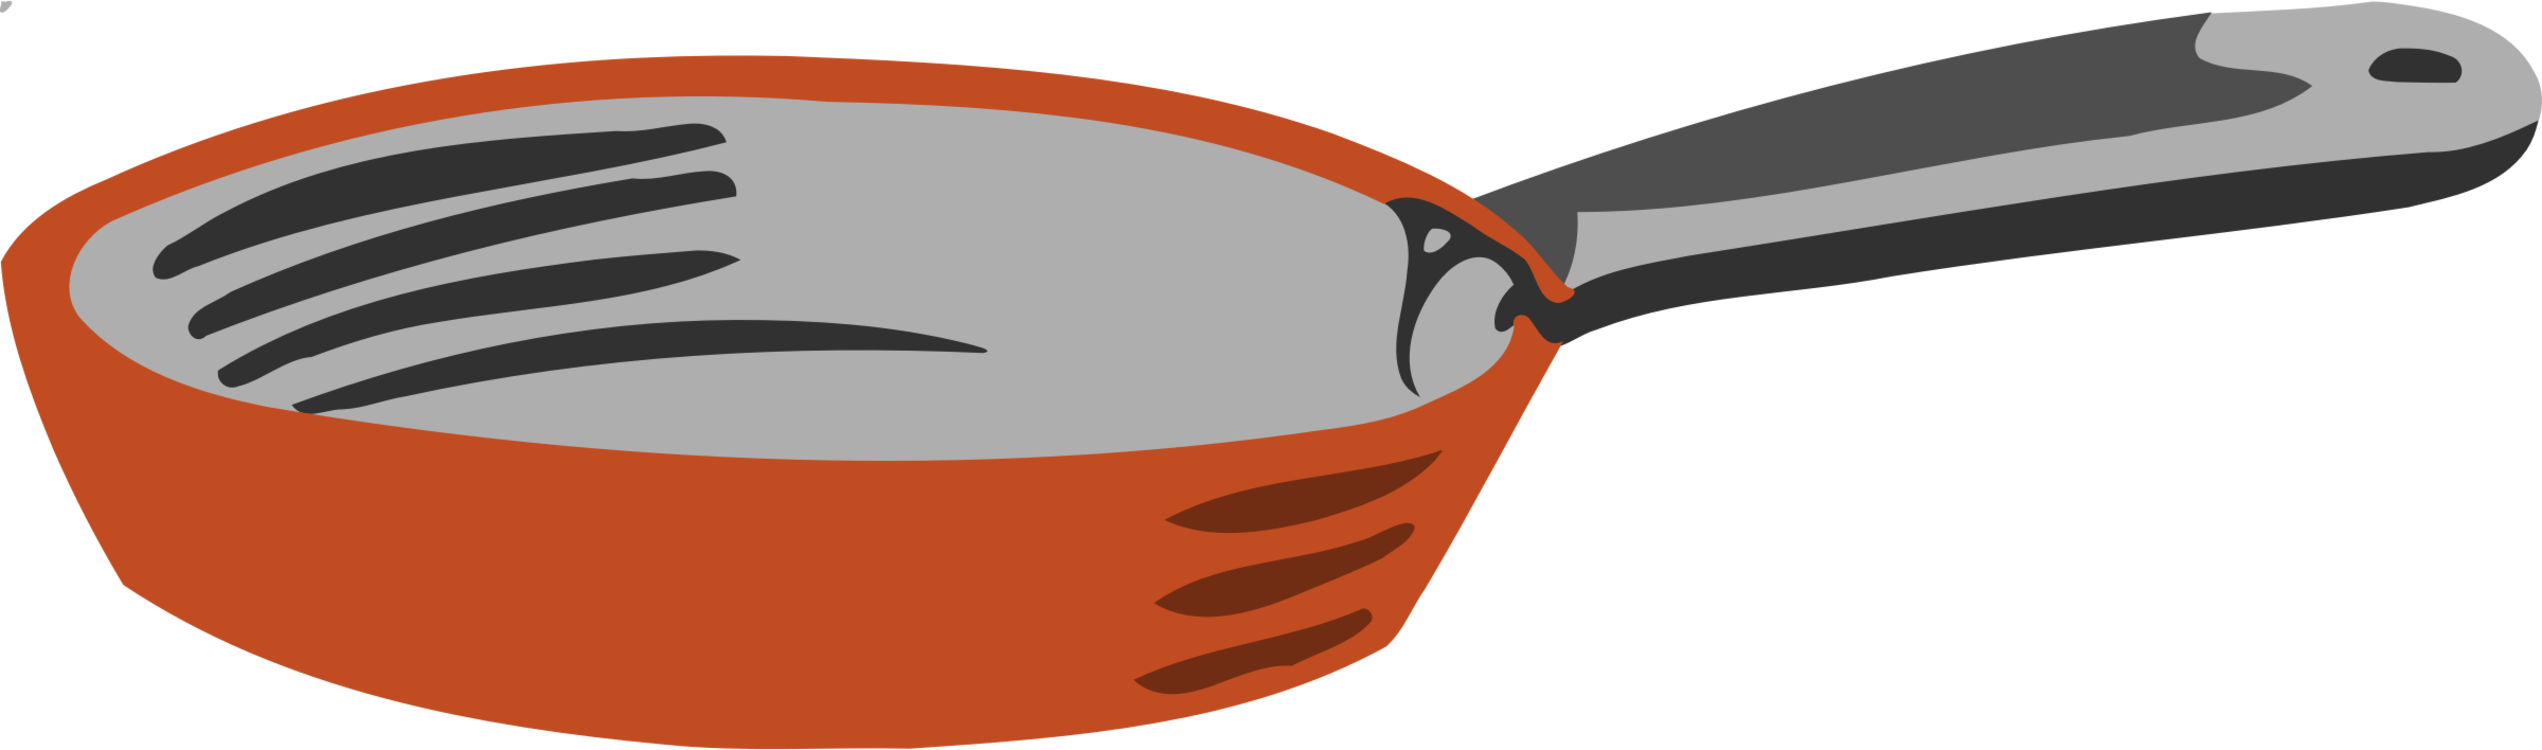 Sunglasses clipart vintage. Frying pan cookware kitchen